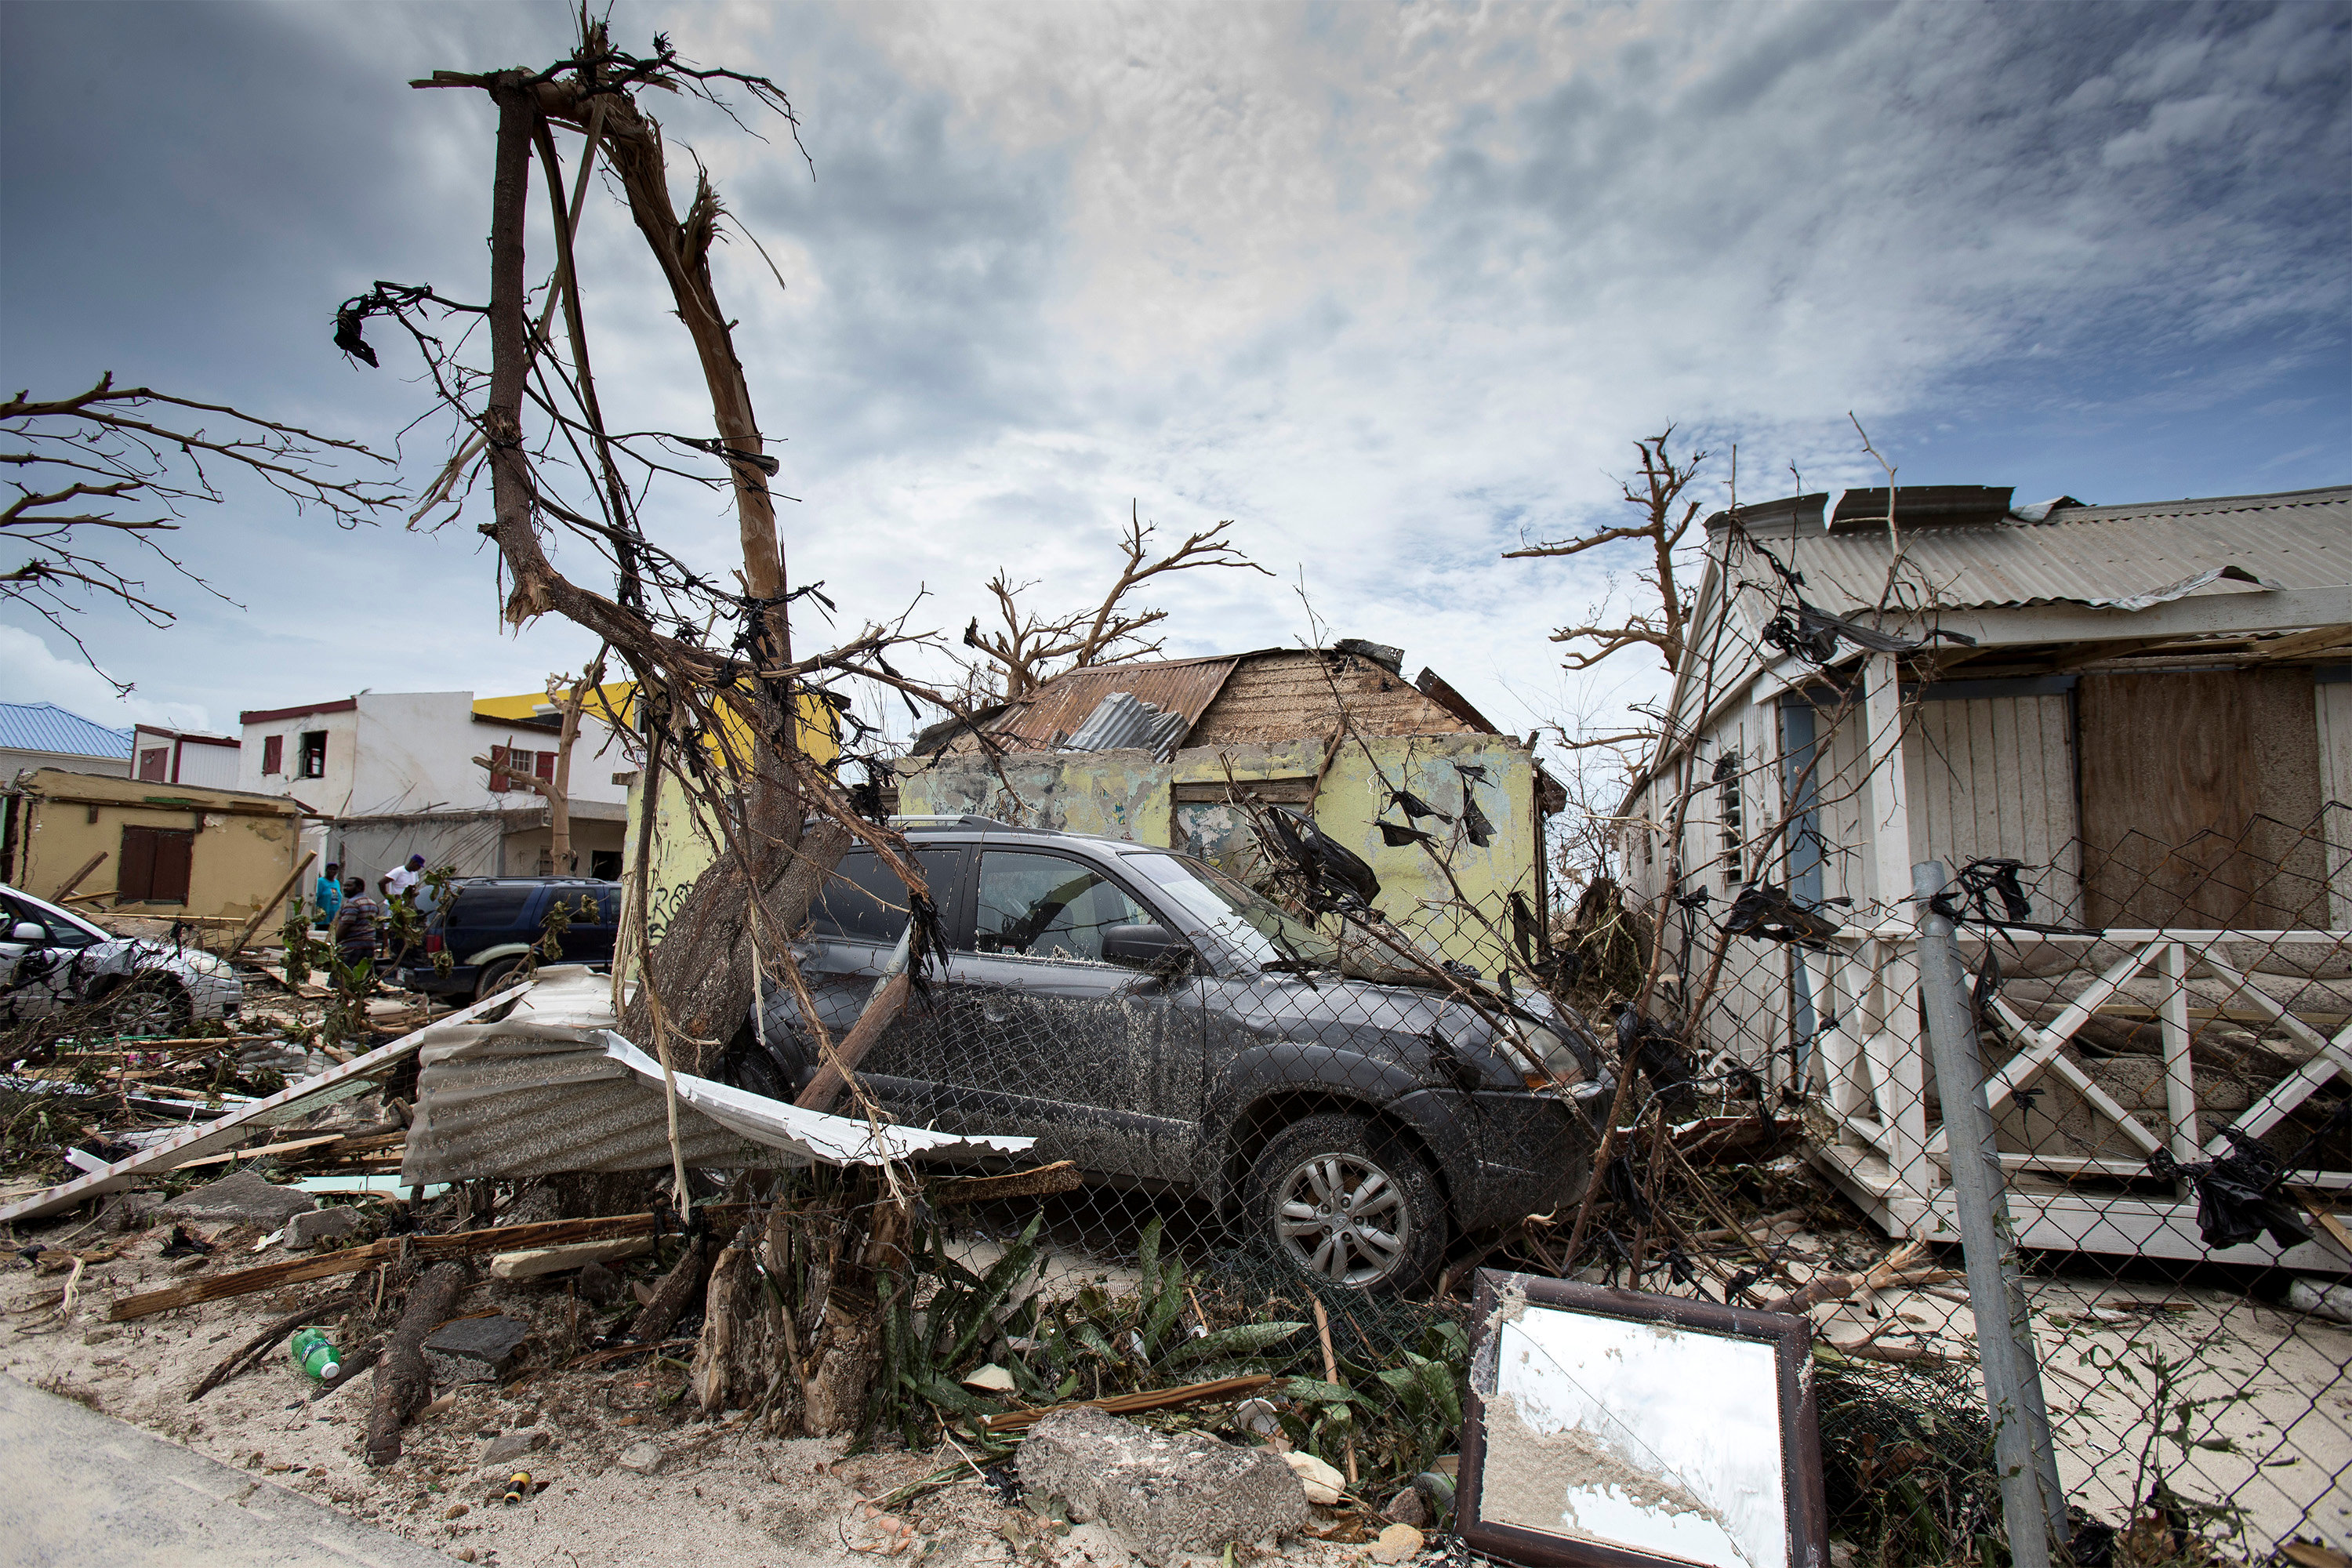 View of the aftermath of Hurricane Irma on Sint Maarten Dutch part of Saint Martin island in the Carribean on Sept. 7, 2017. (Netherlands Ministry of Defence- Gerben van Es/Handout via REUTERS)